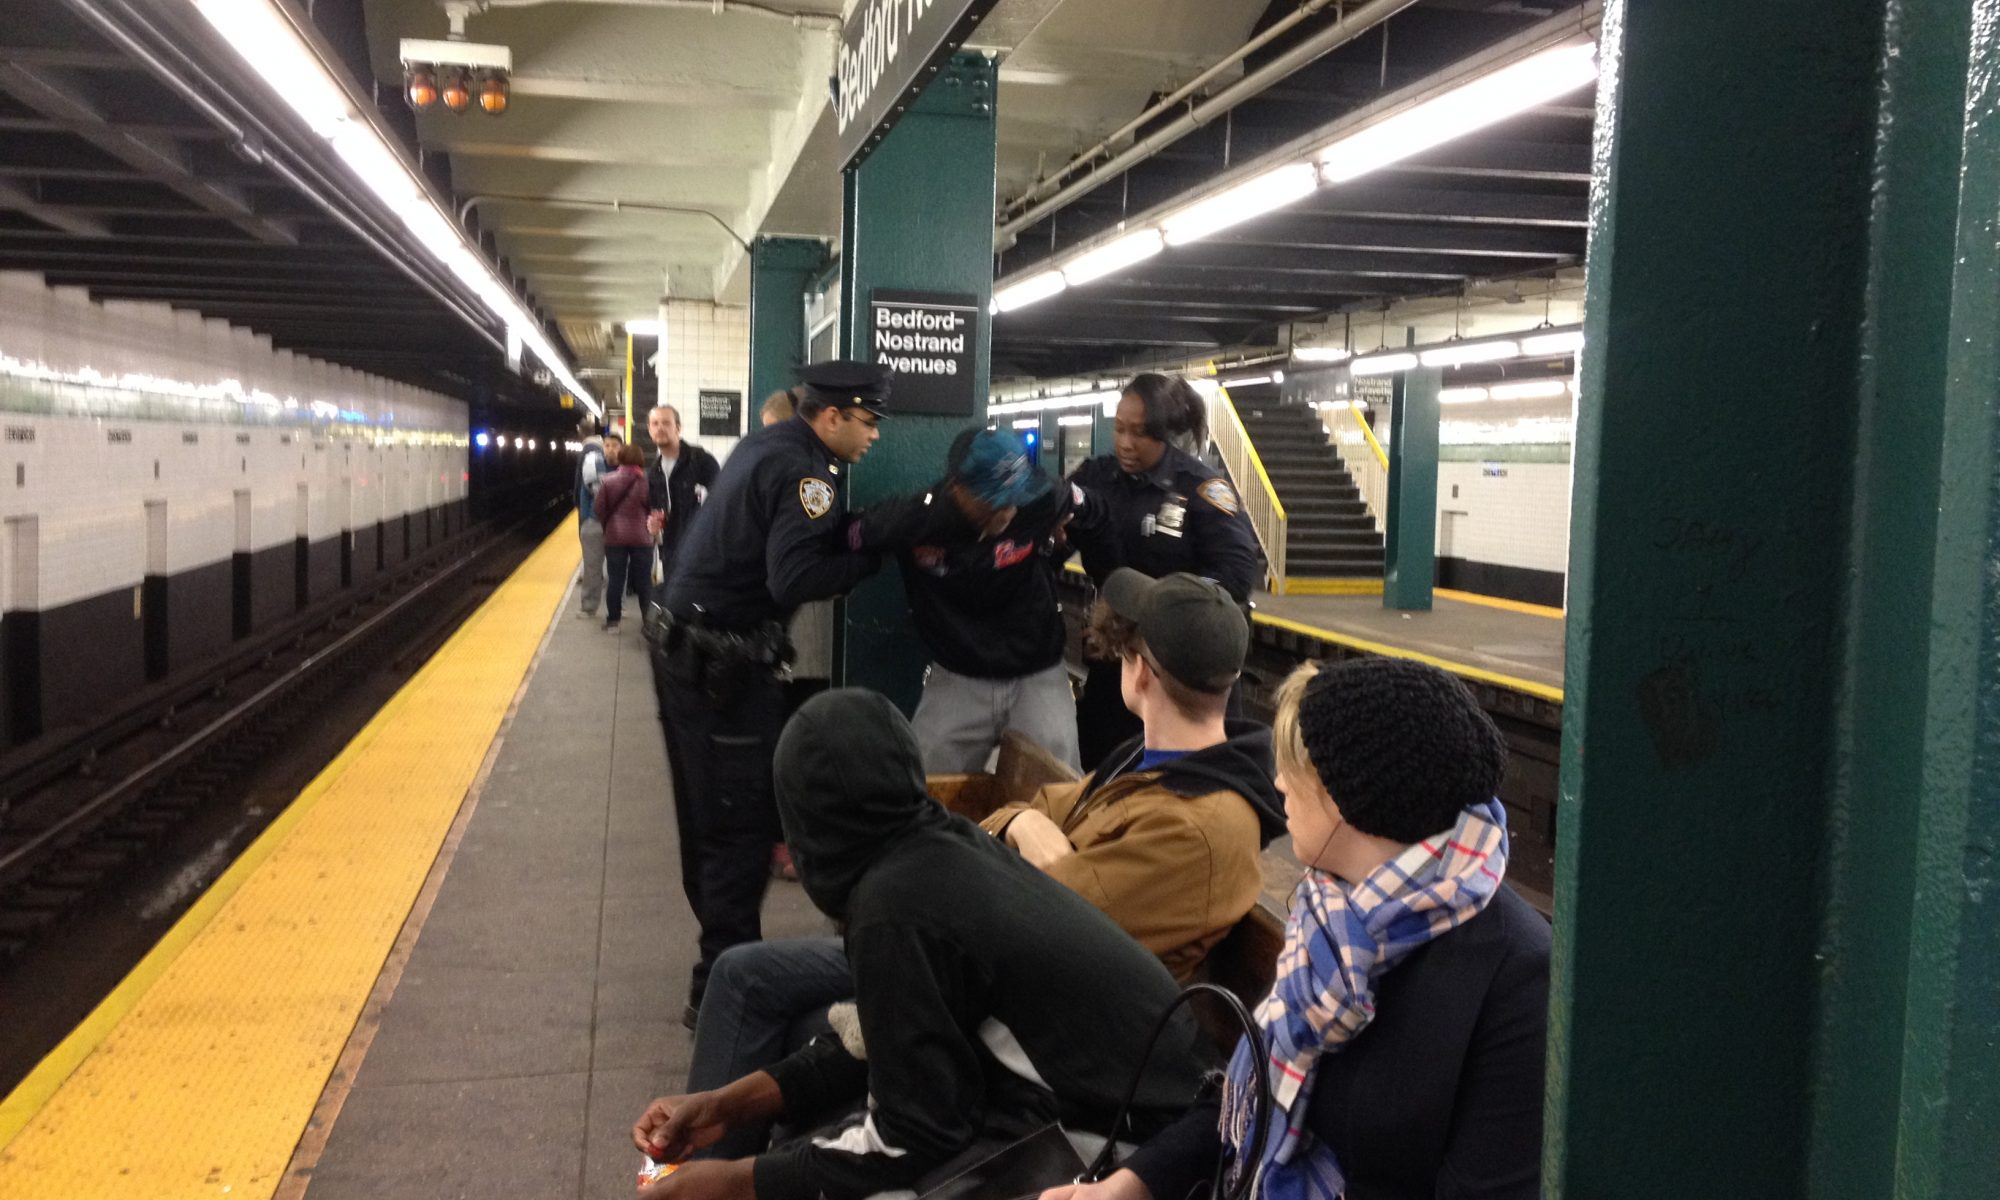 peron being arrested on g-train platform at Bedford-Nostrand Aves, Bklyn